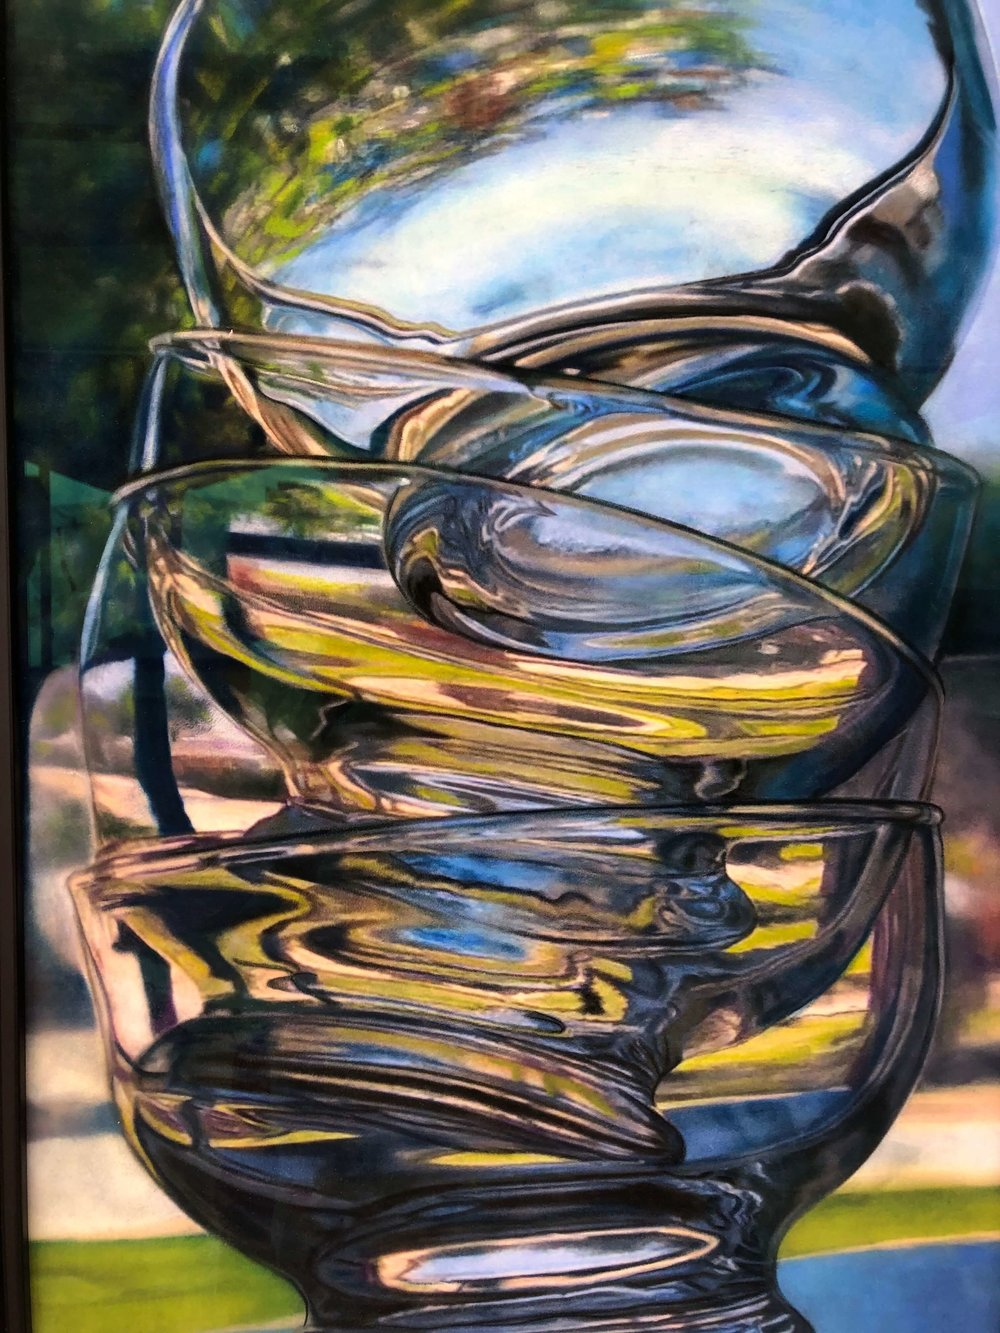 Artwork of artist, Barbara Mason, seen at The Woodlands Waterway Art Festival